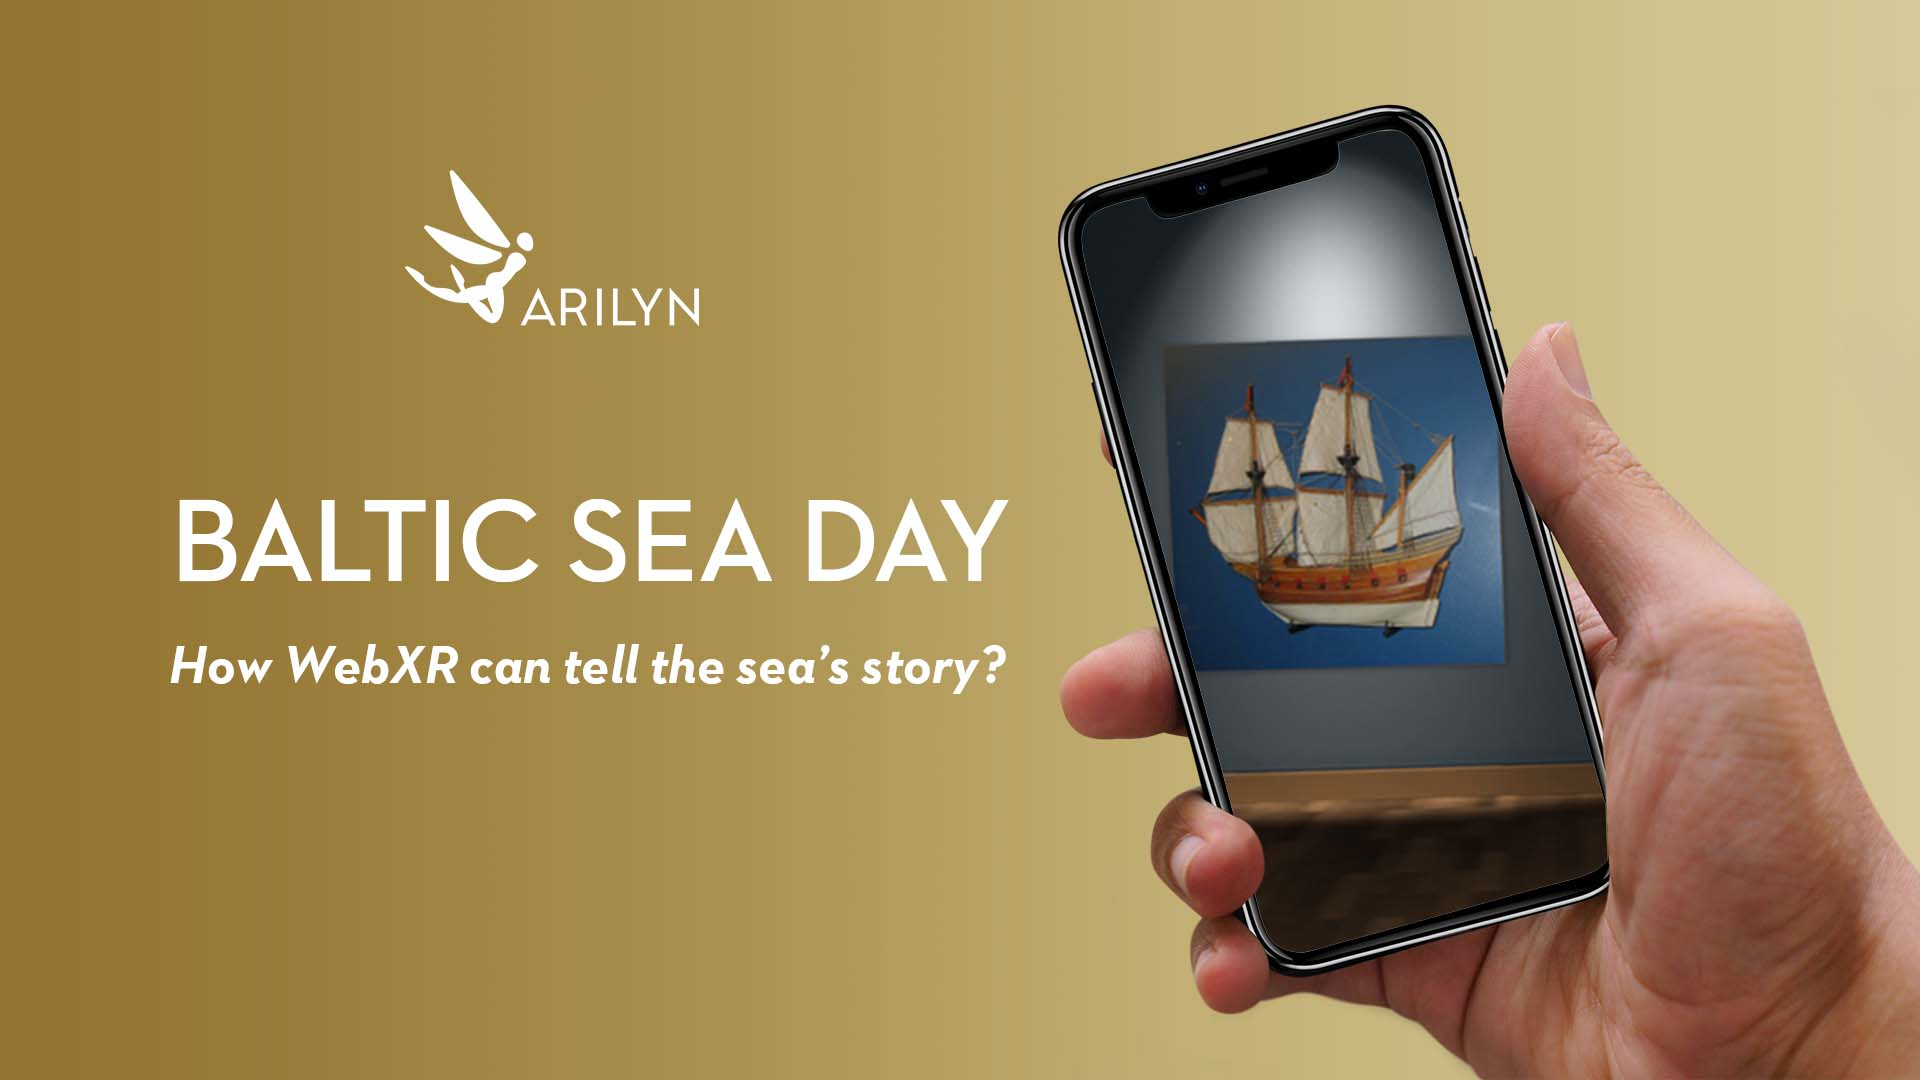 Celebrating the Baltic Sea with extended and augmented reality